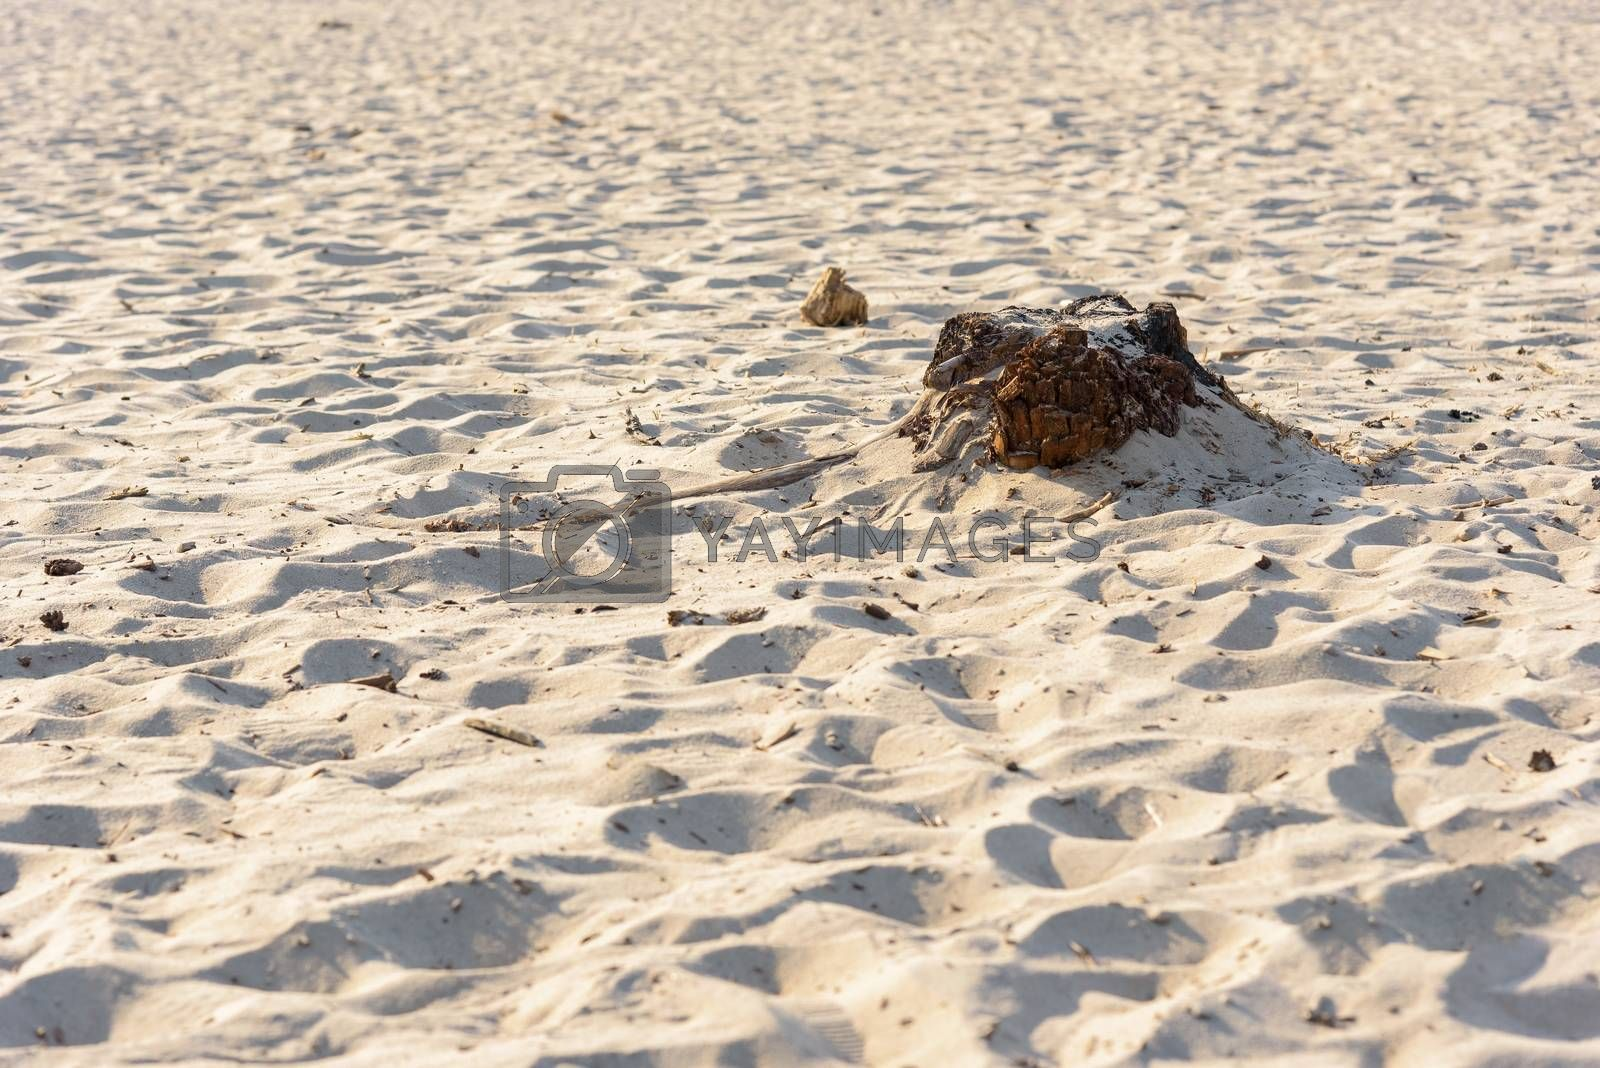 Tree remains in the sand of Bledow Desert as natural background